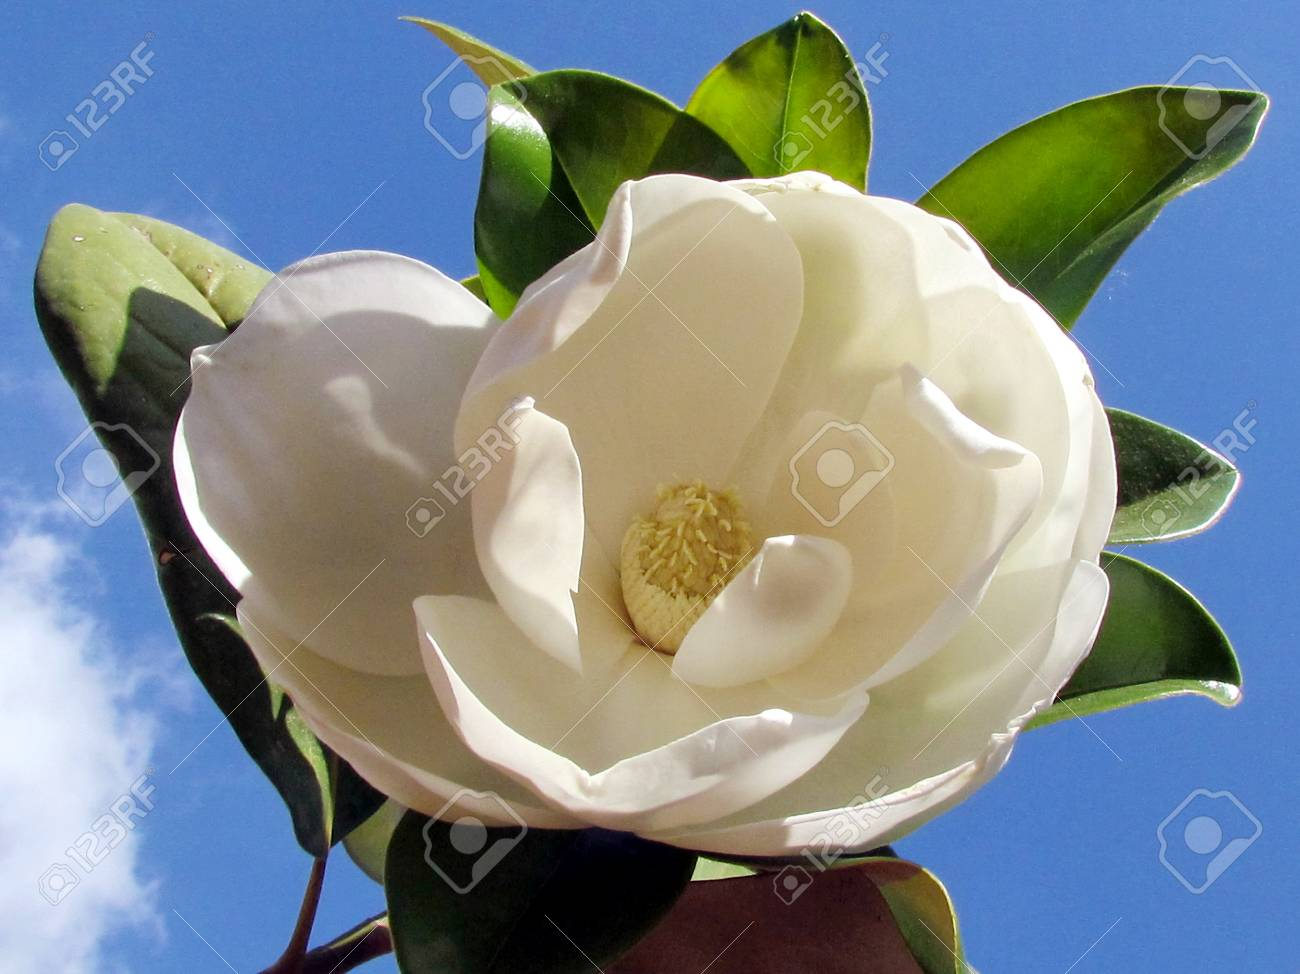 The White Magnolia Flower Isolated In Or Yehuda Israel Stock Photo